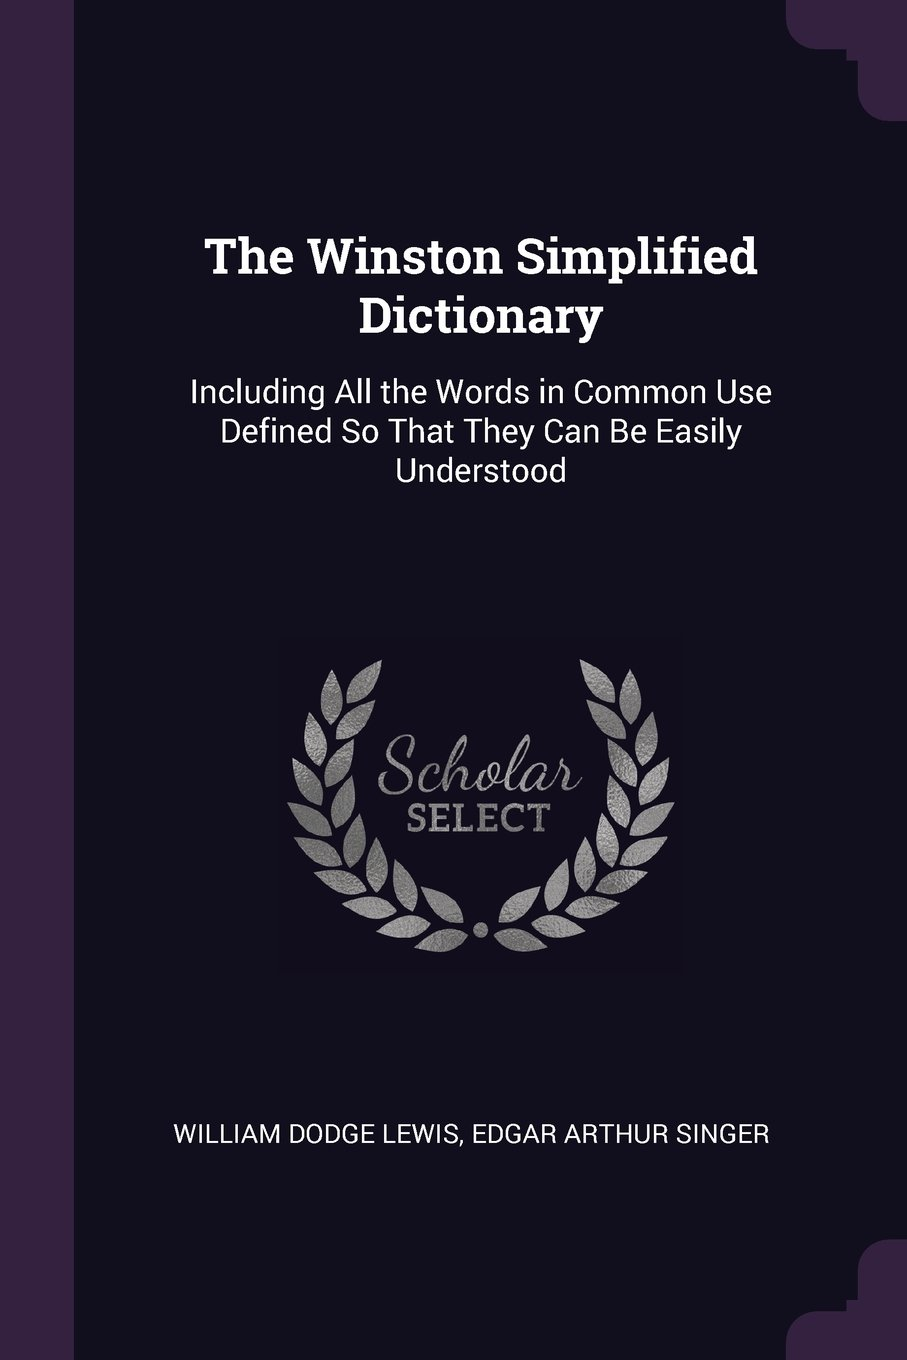 The Winston Simplified Dictionary: Including All the Words in Common Use Defined So That They Can Be Easily Understood PDF